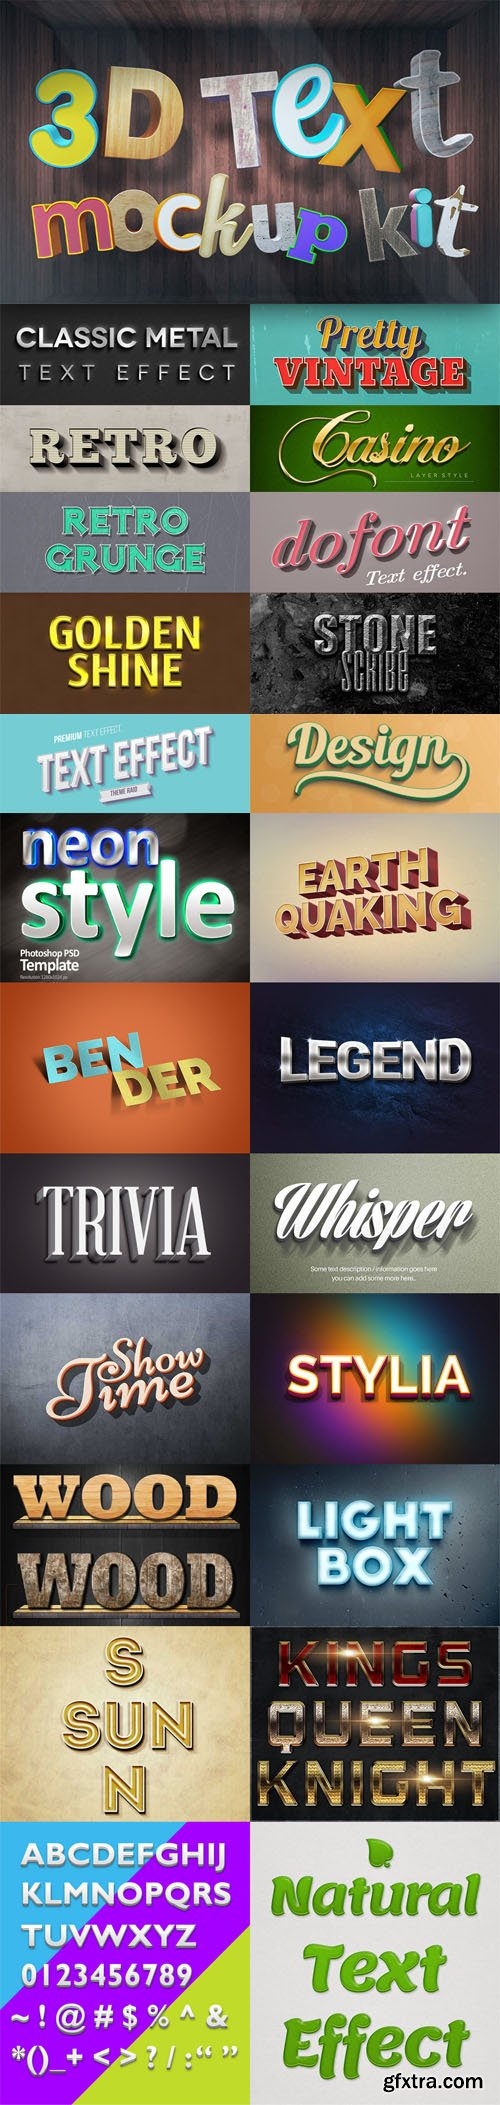 22 Photoshop Text Effects to Create Easy Text Styles